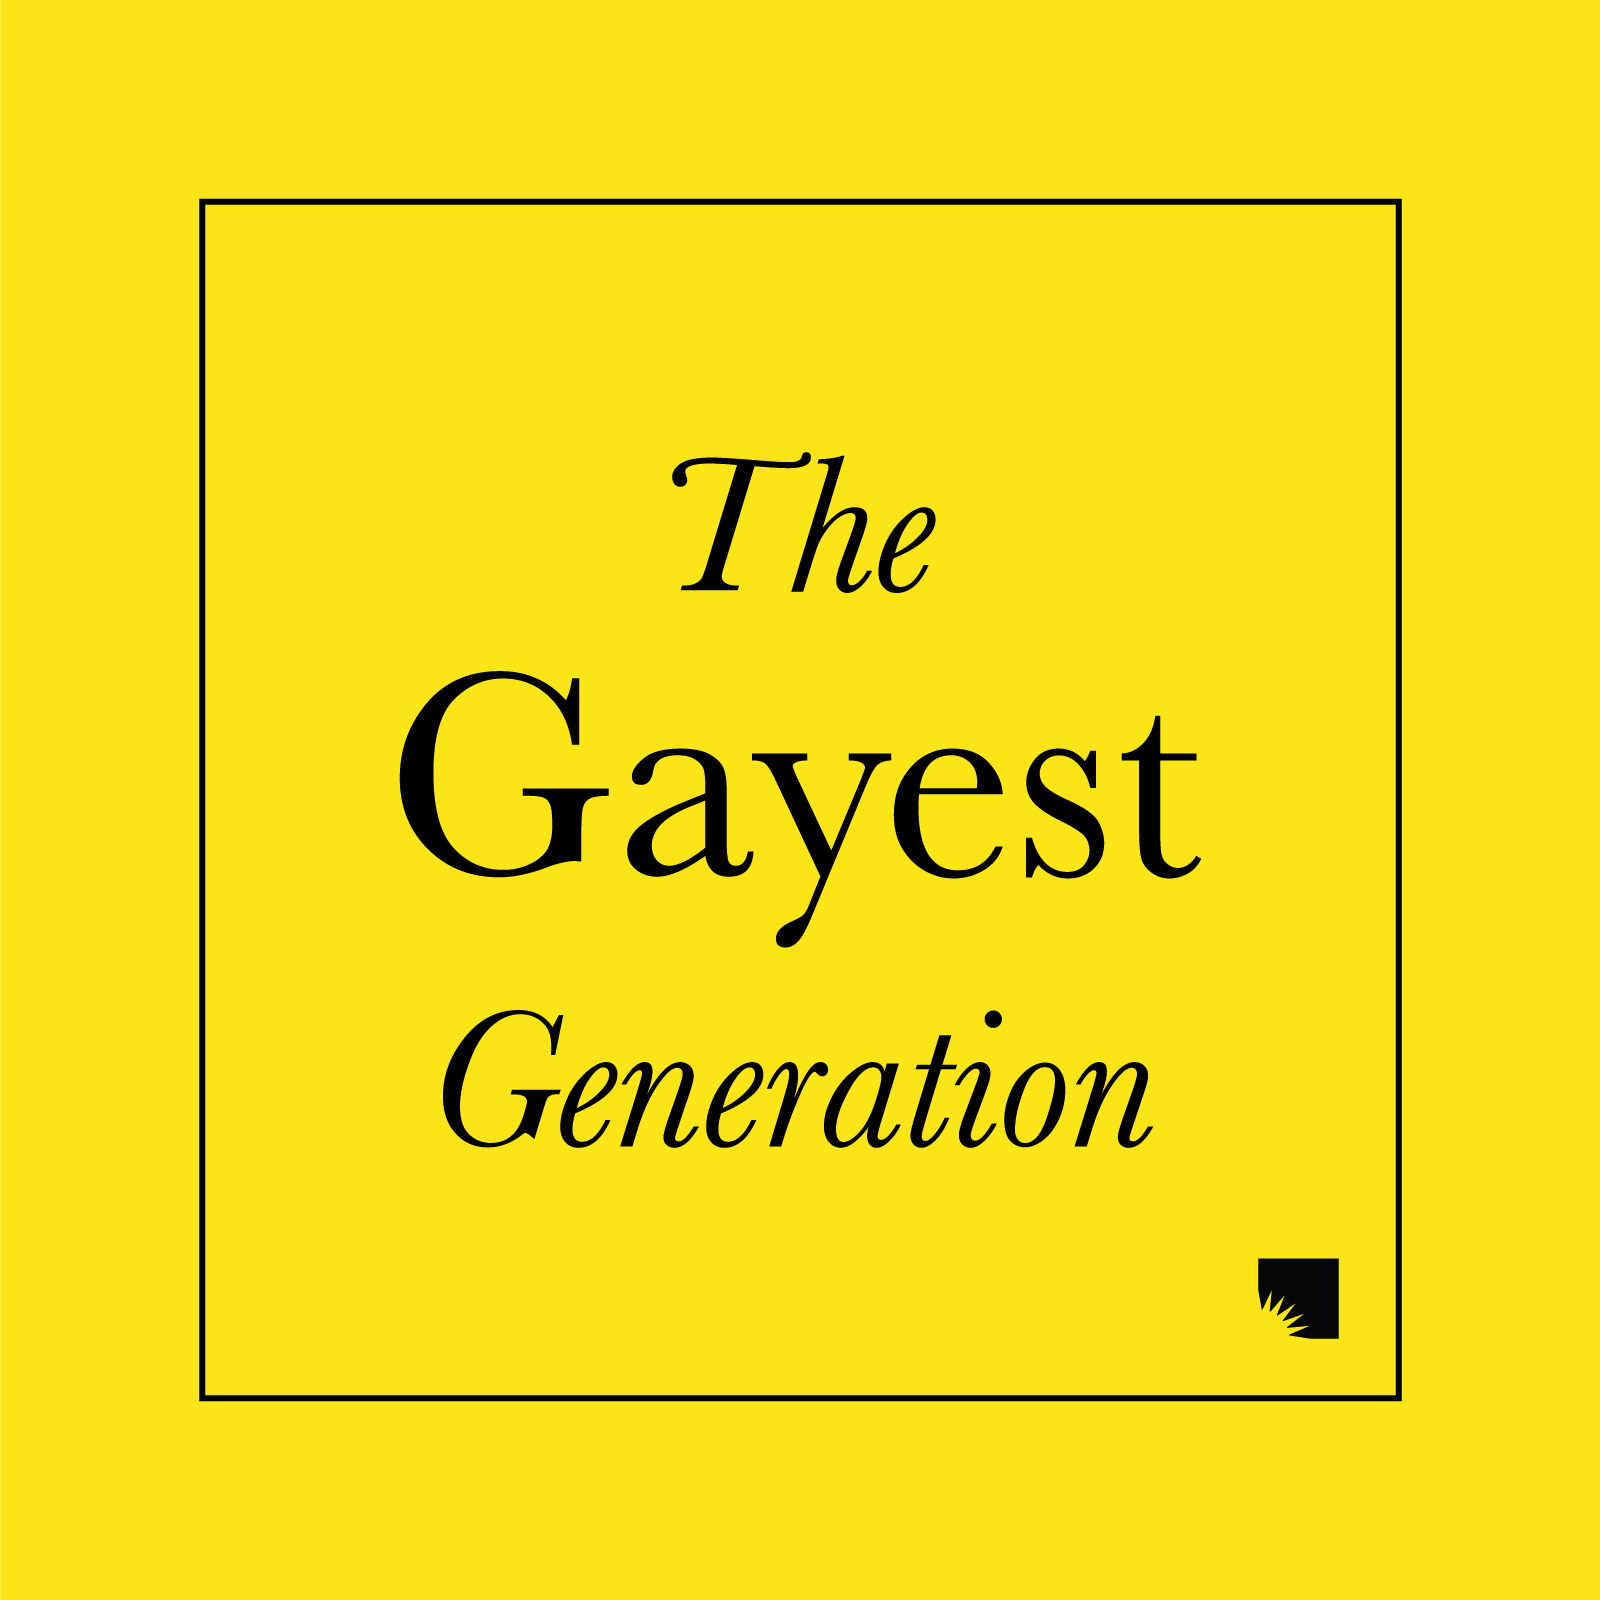 Promotional image for The Gayest Generation Ep. 5 - Carol E. Anderson podcast